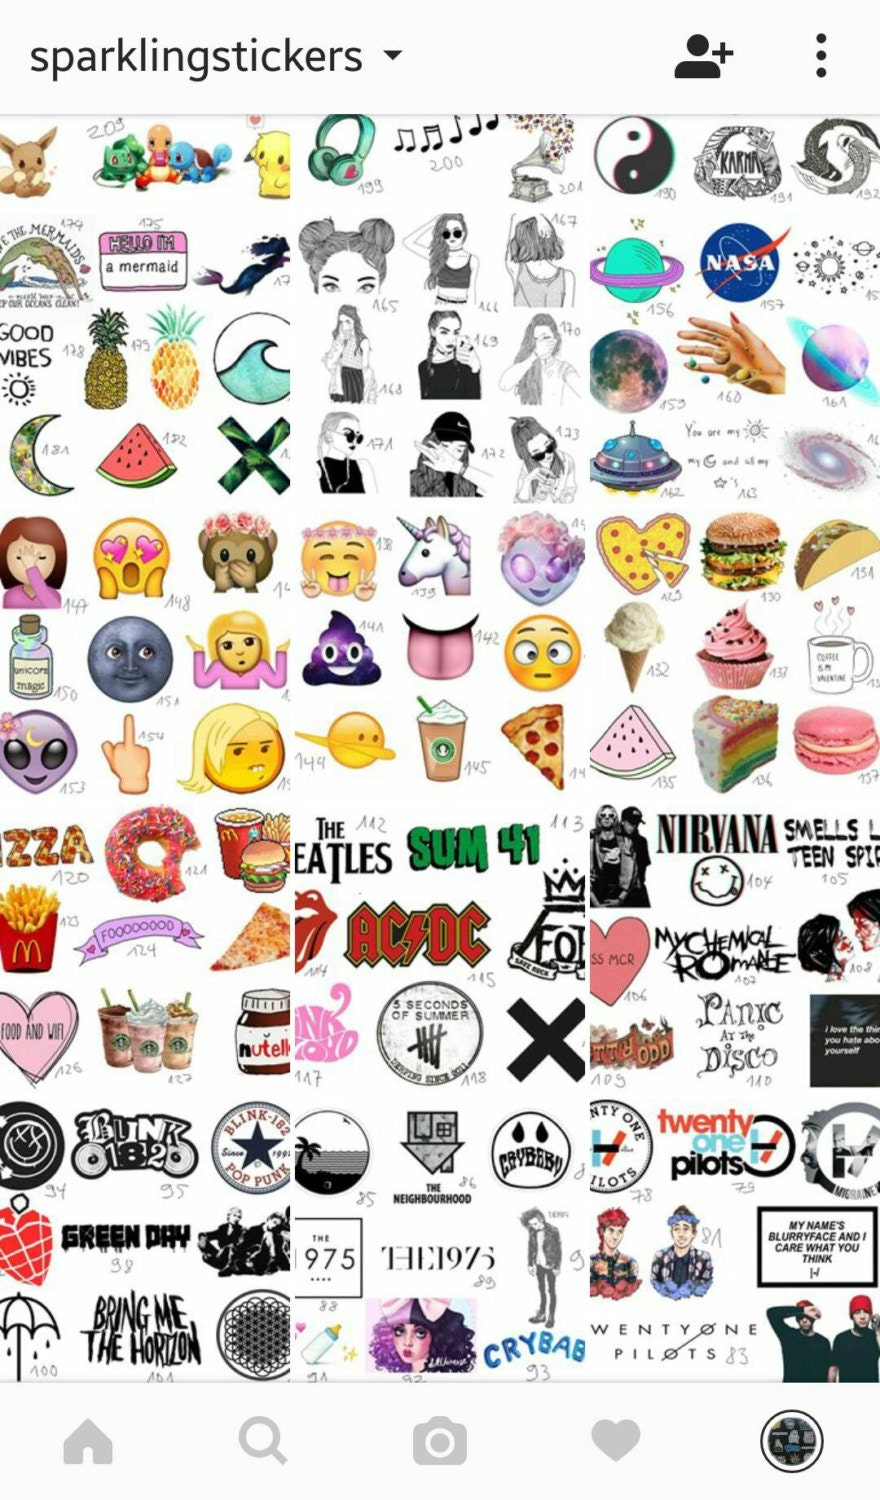 350+ stickers, you choose! Tumblr, grunge, indie... from SparklingStuffStudio on Etsy Studio